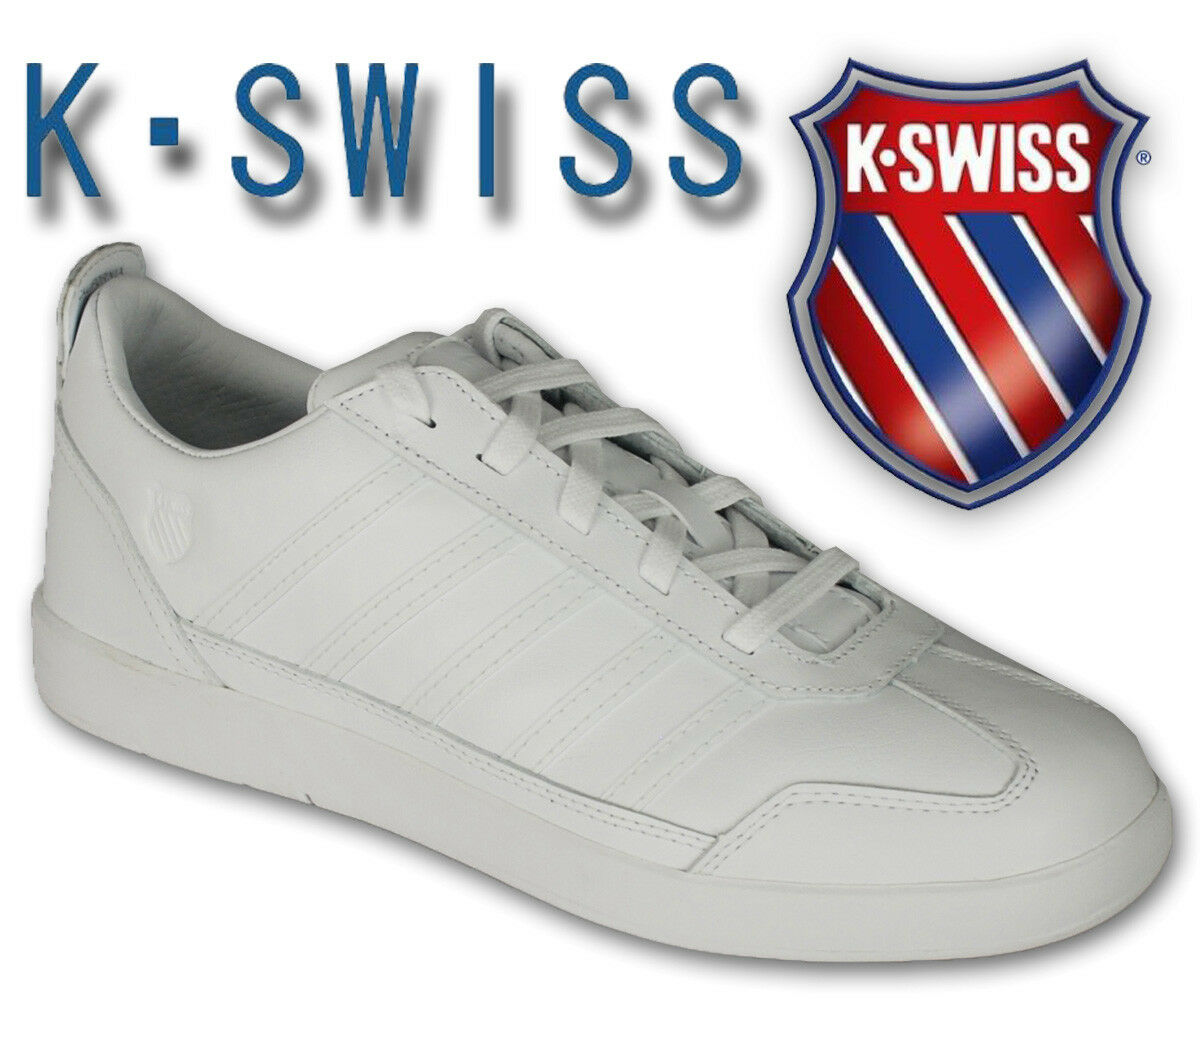 Uomo Trainers K Swiss Lace Up Schuhes Leder Walking Jogging Casual Weiß New